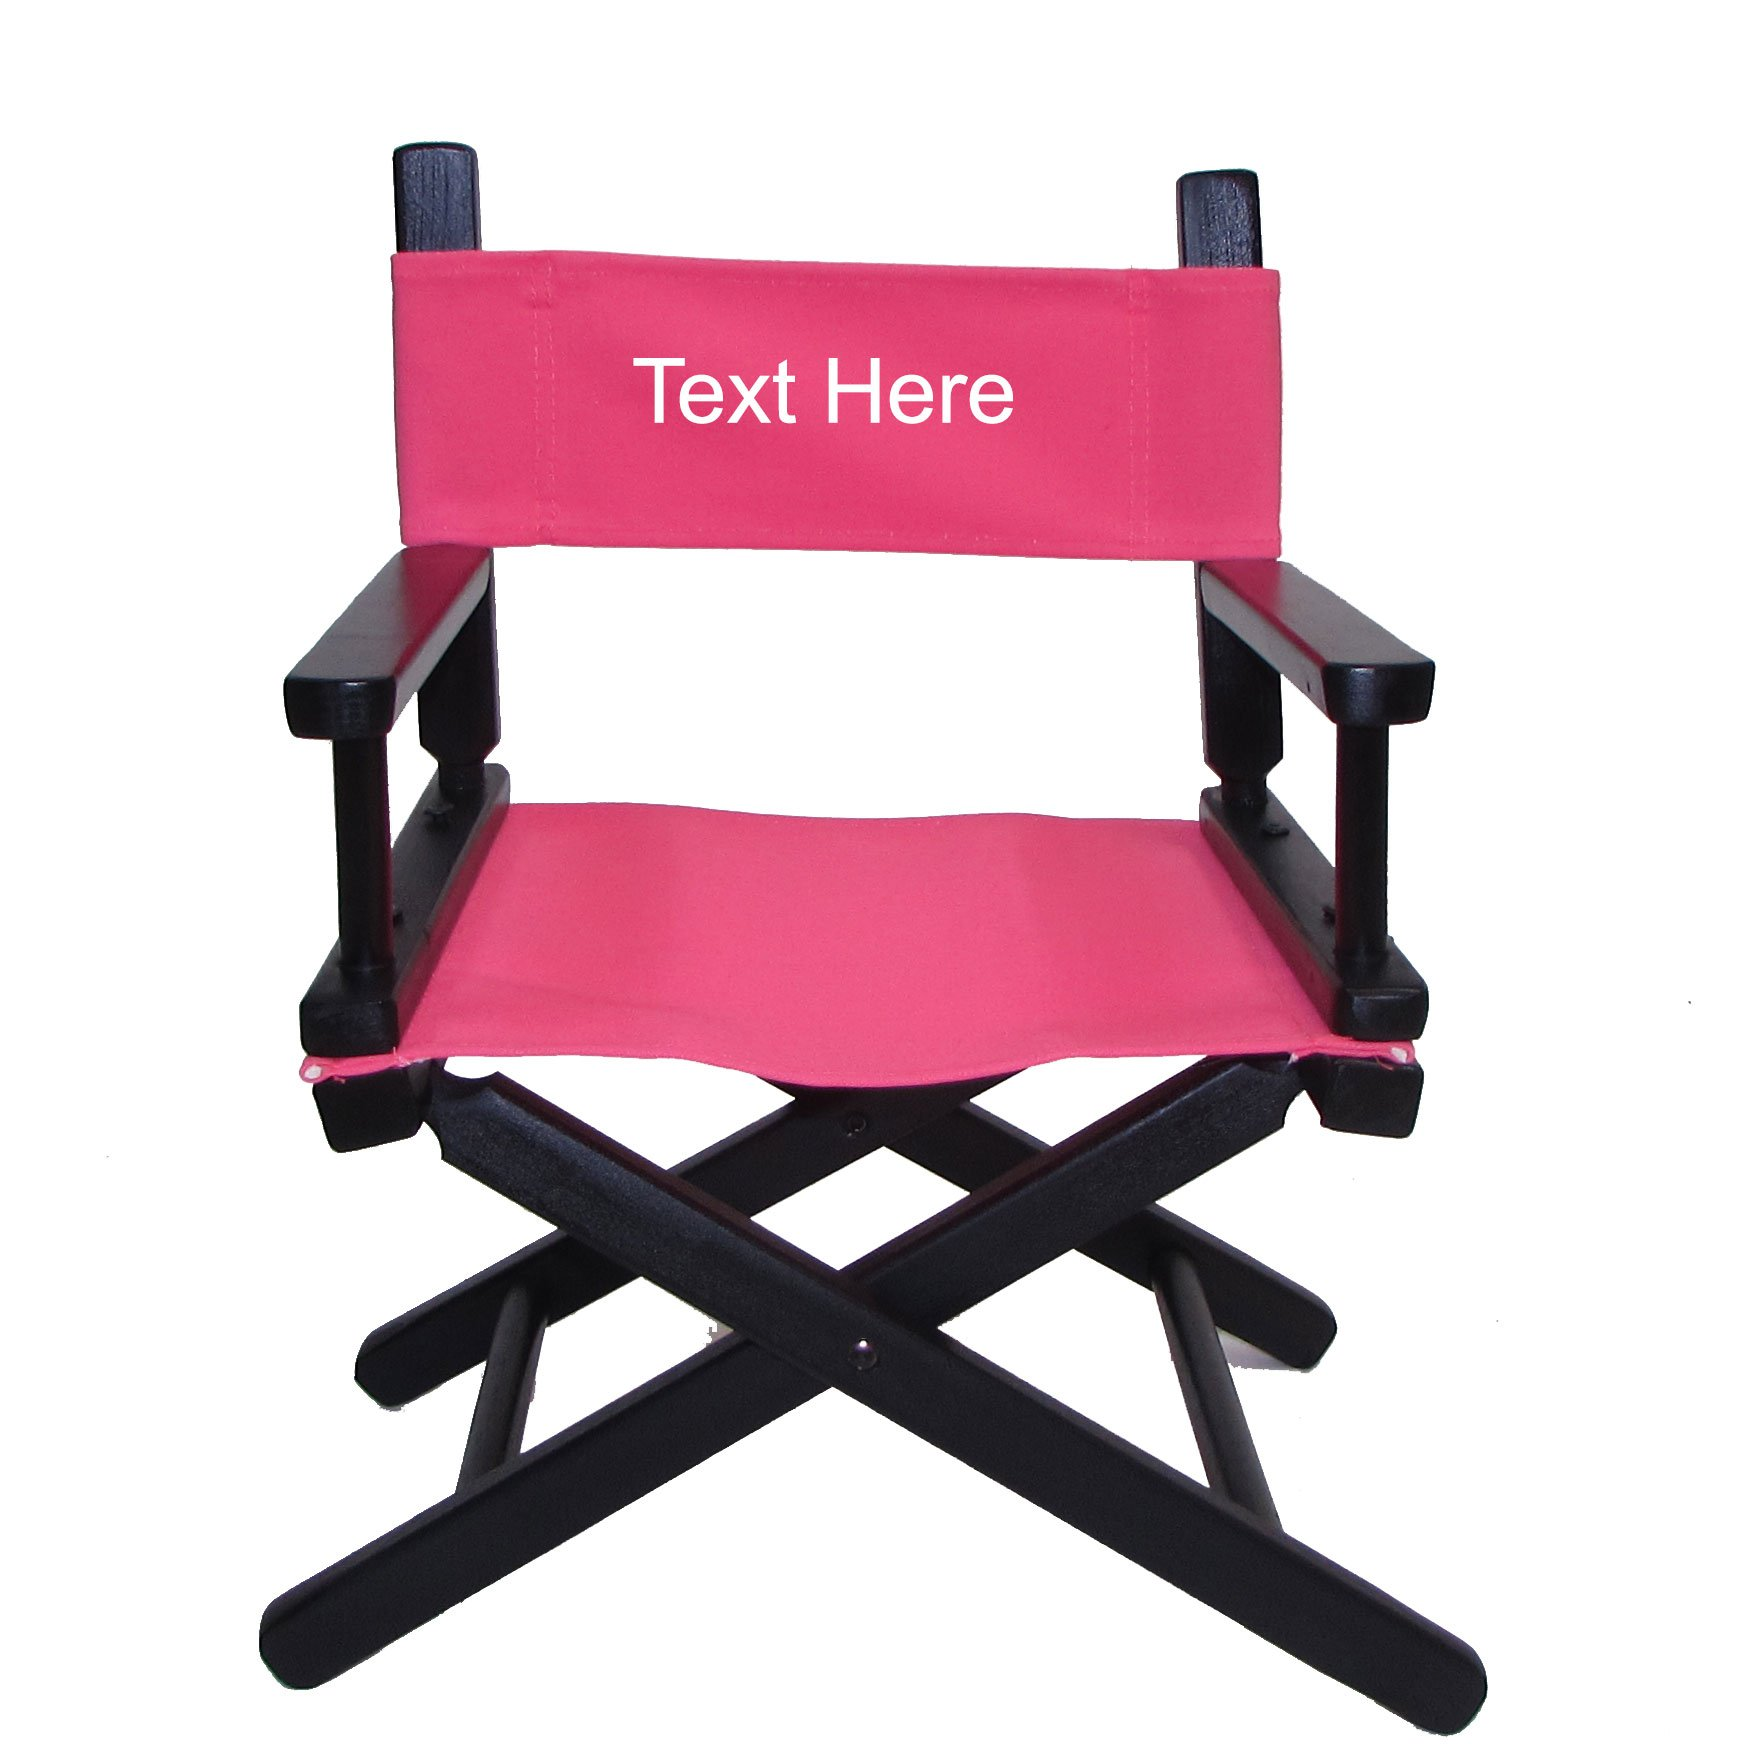 PERSONALIZED IMPRINTED Black Frame Toddler's Directors Chair by Gold Medal - Pink Canvas by TLT